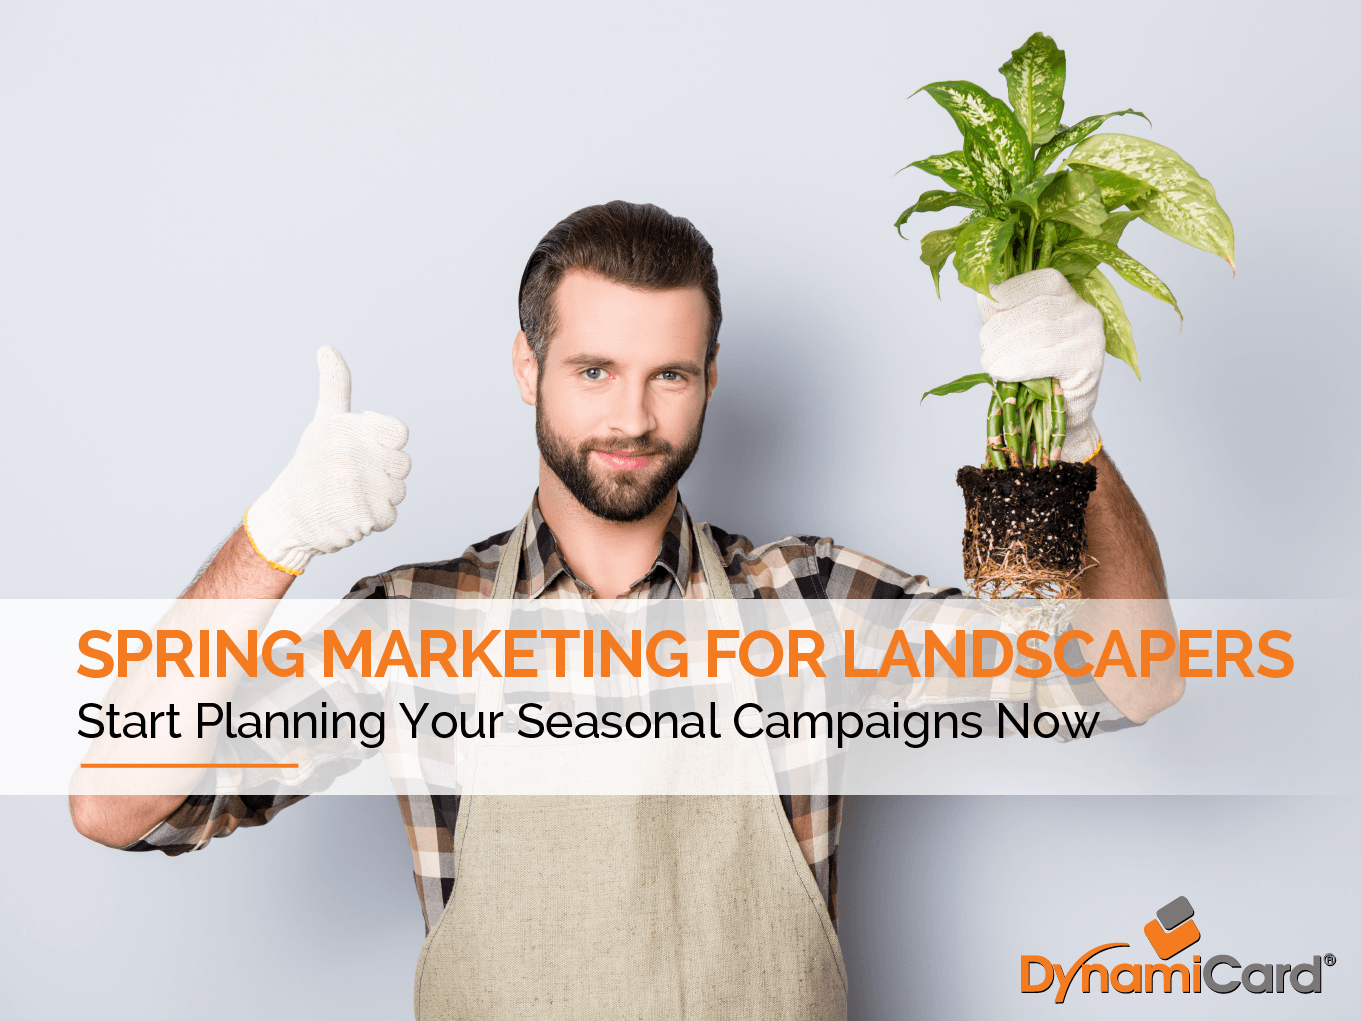 Landscaper Marketing